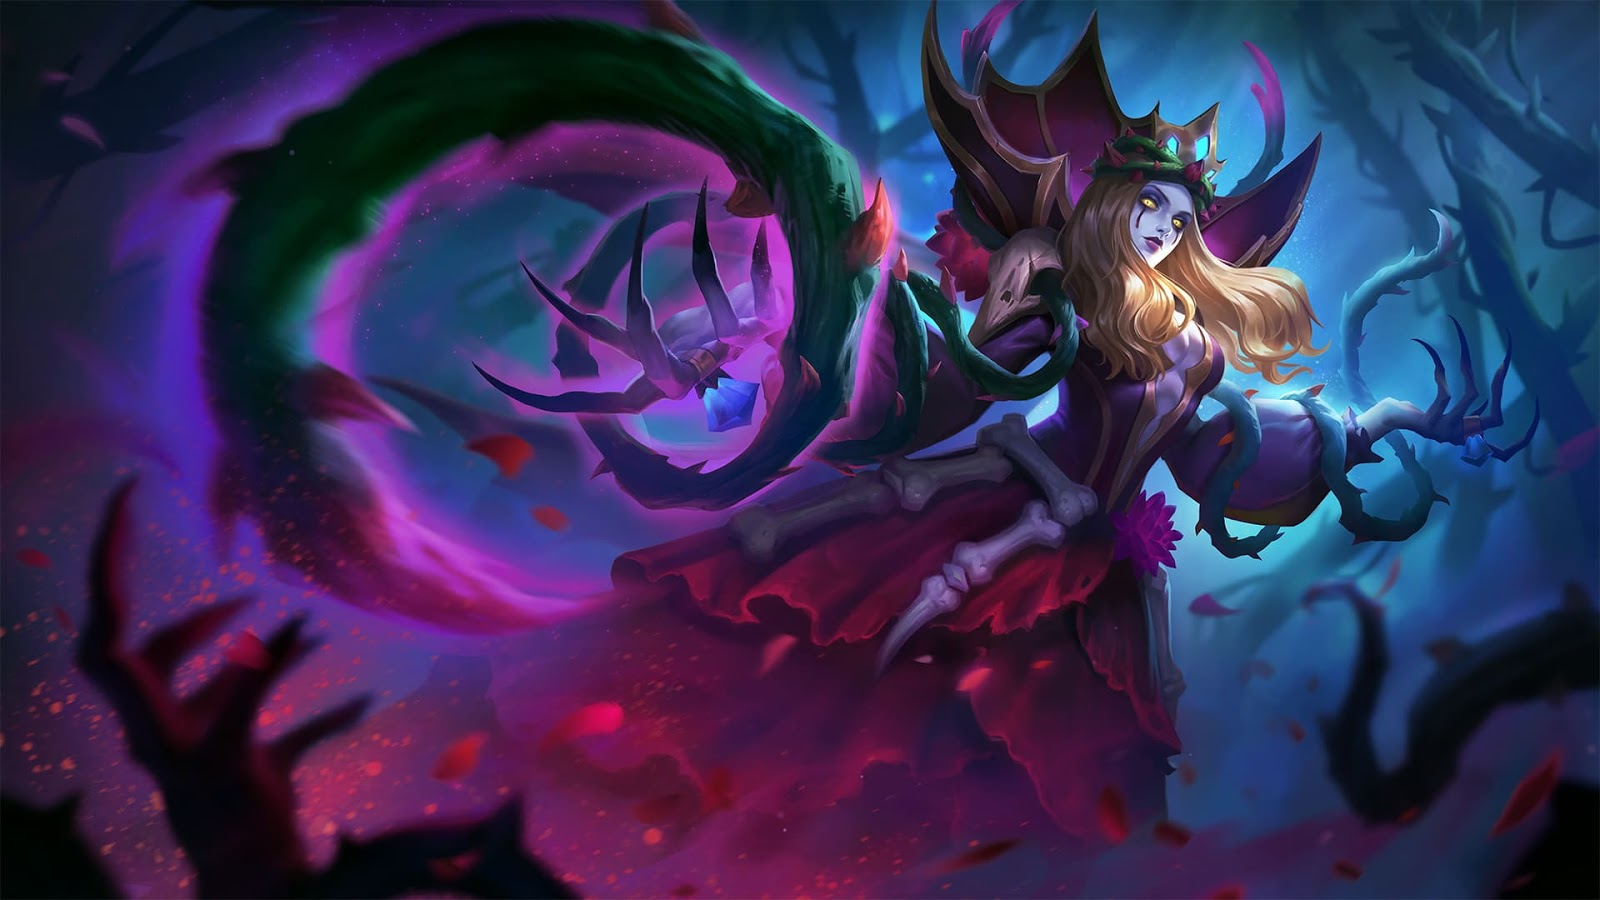 Wallpaper Vexana Sanguine Rose Skin Mobile Legends HD for PC